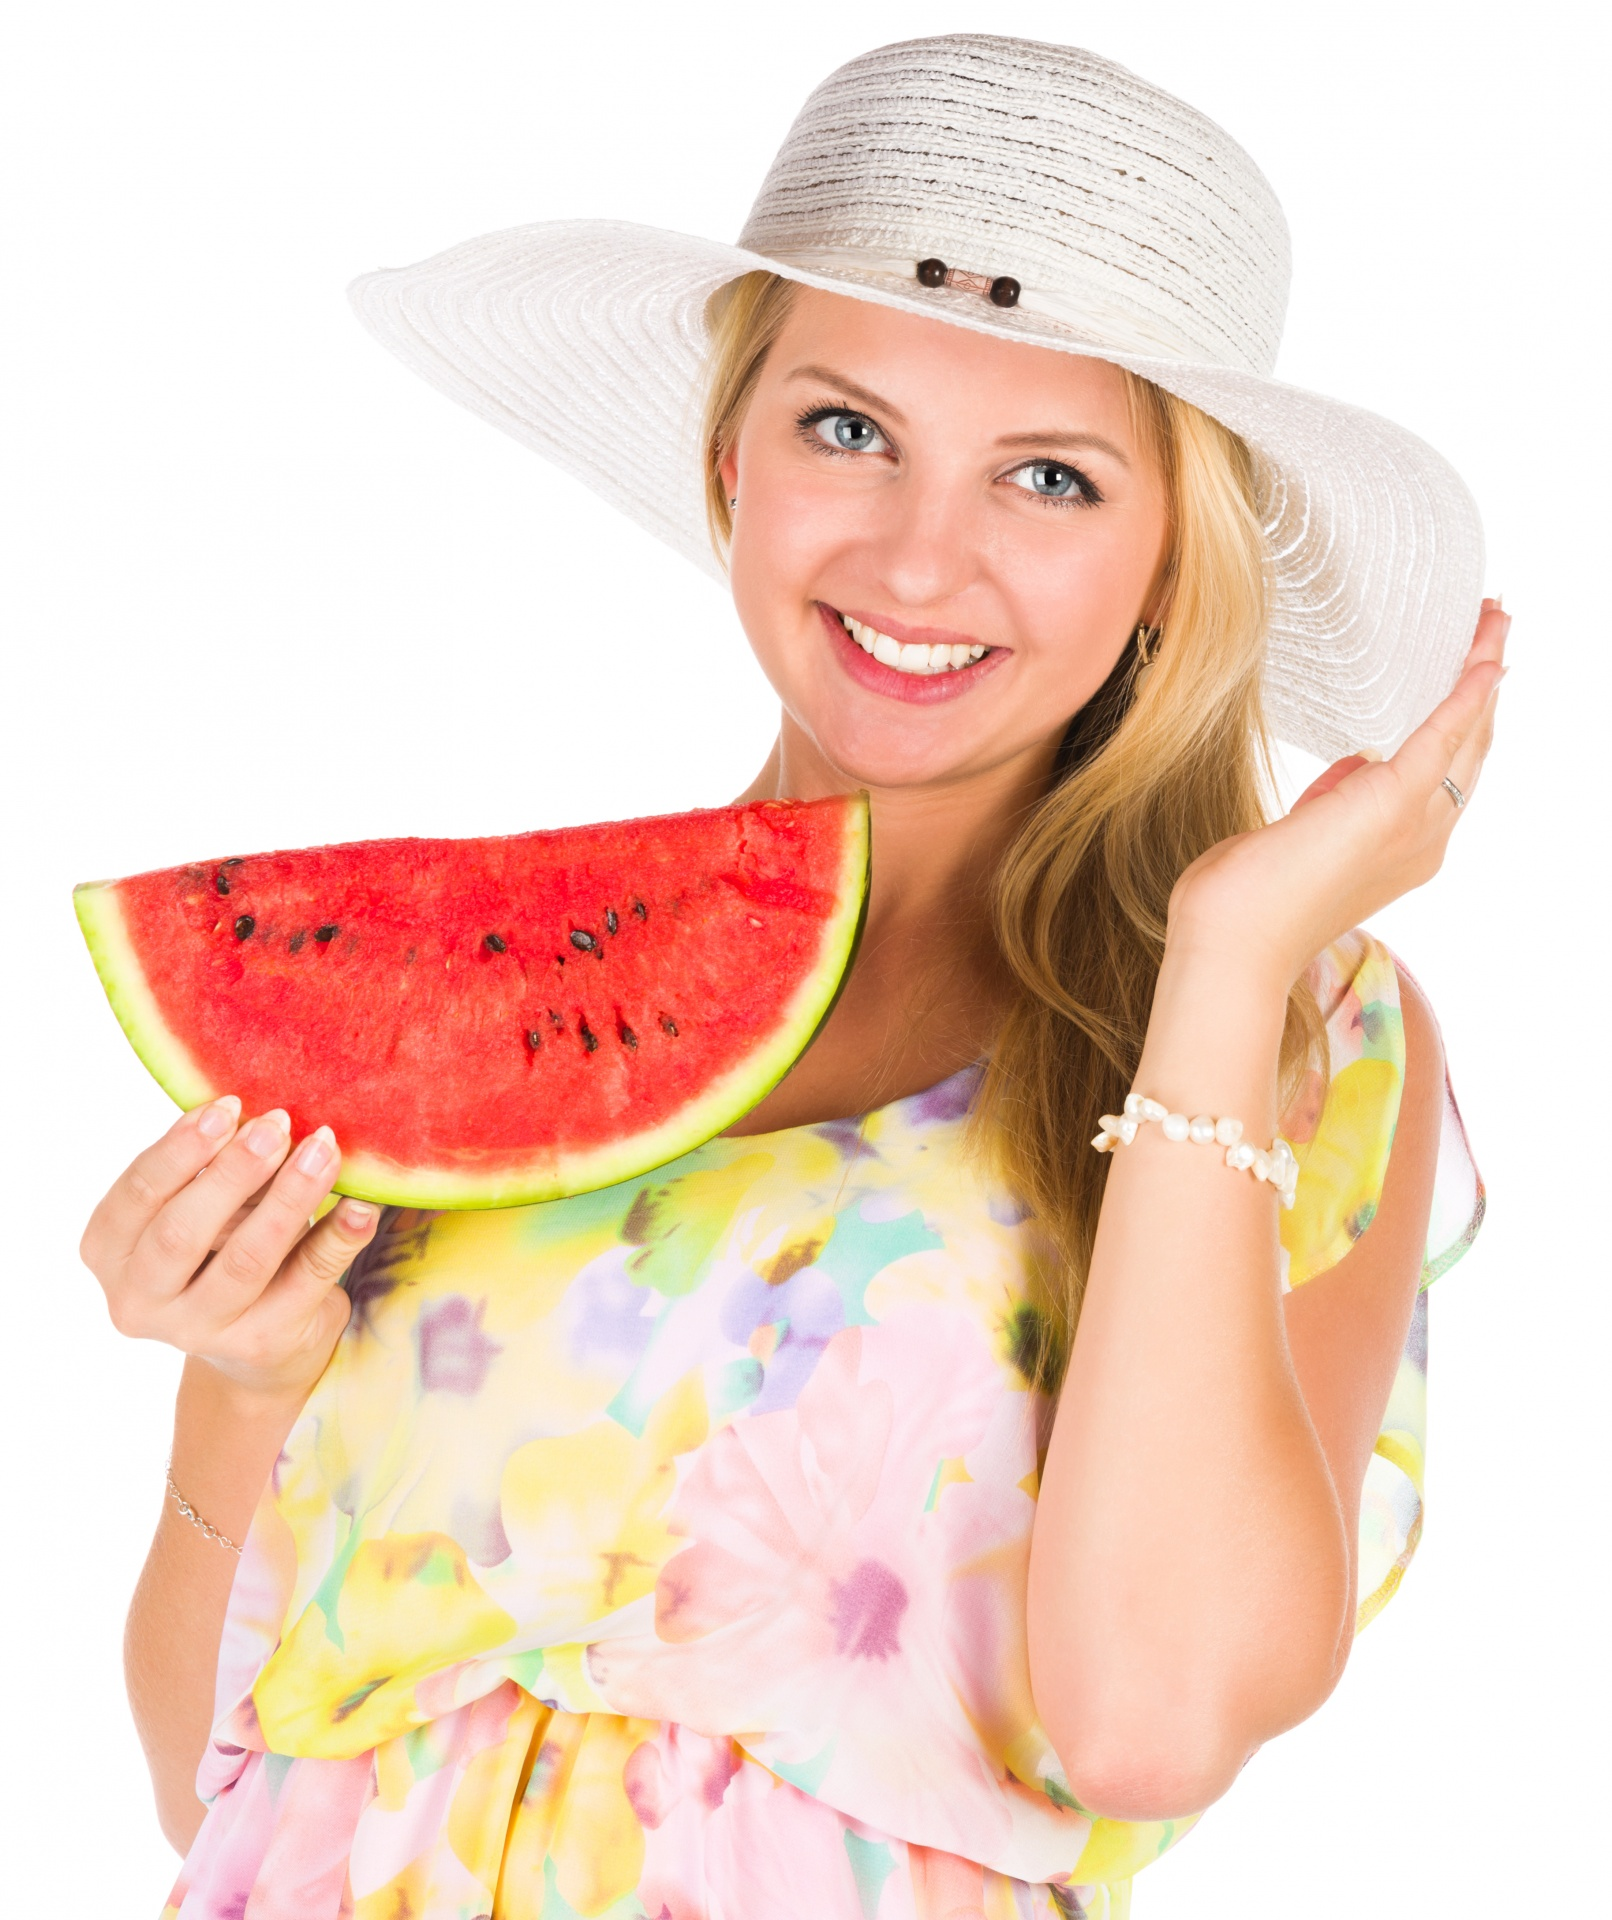 11 - 17 Girls With Their Watermelons To Give You A Taste Of Watermelonday